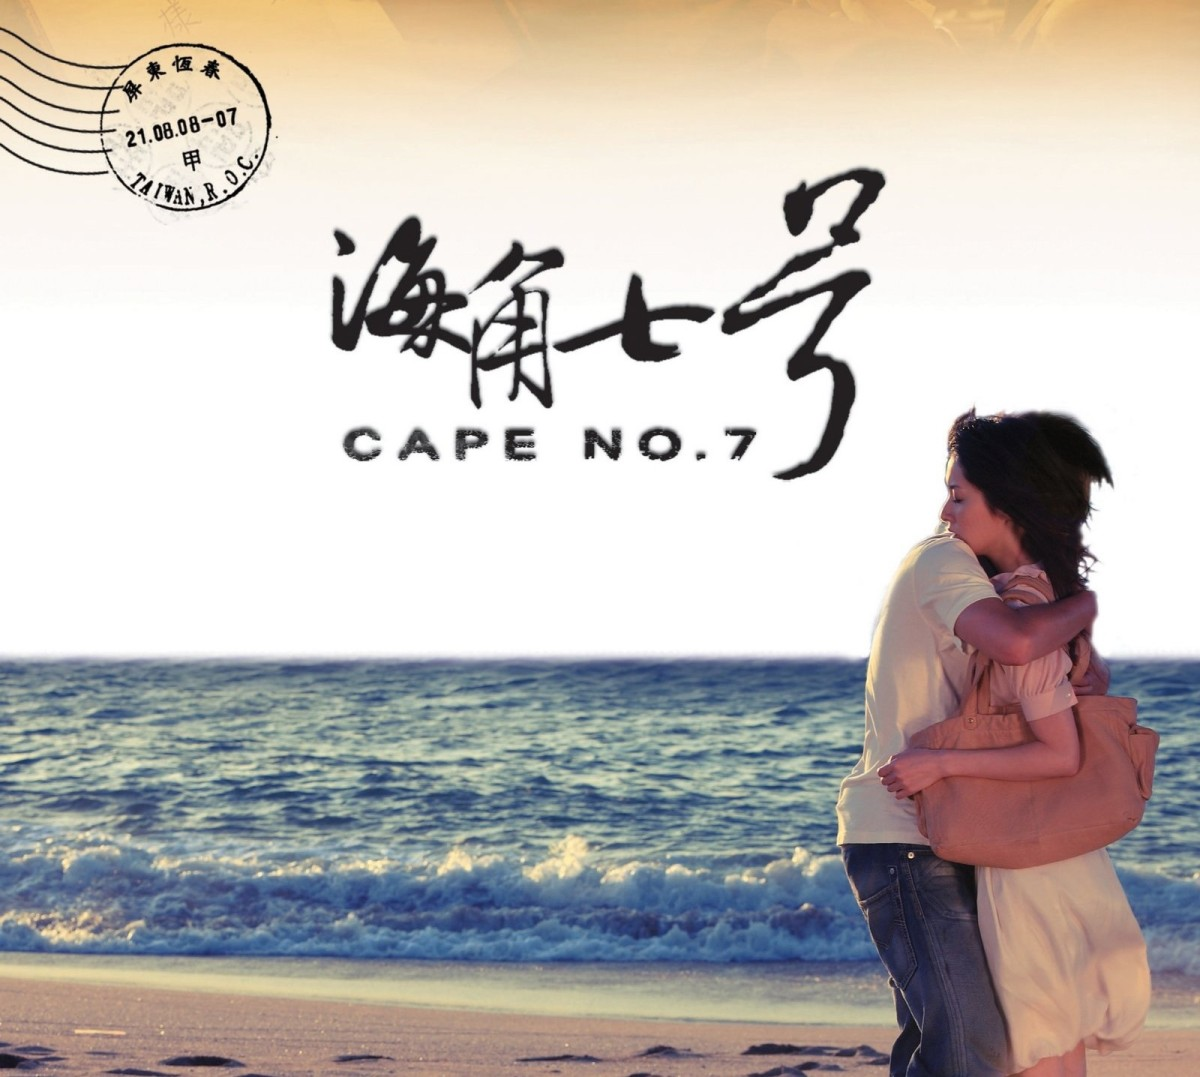 10 years after Cape No. 7: The development of cinema in Taiwan